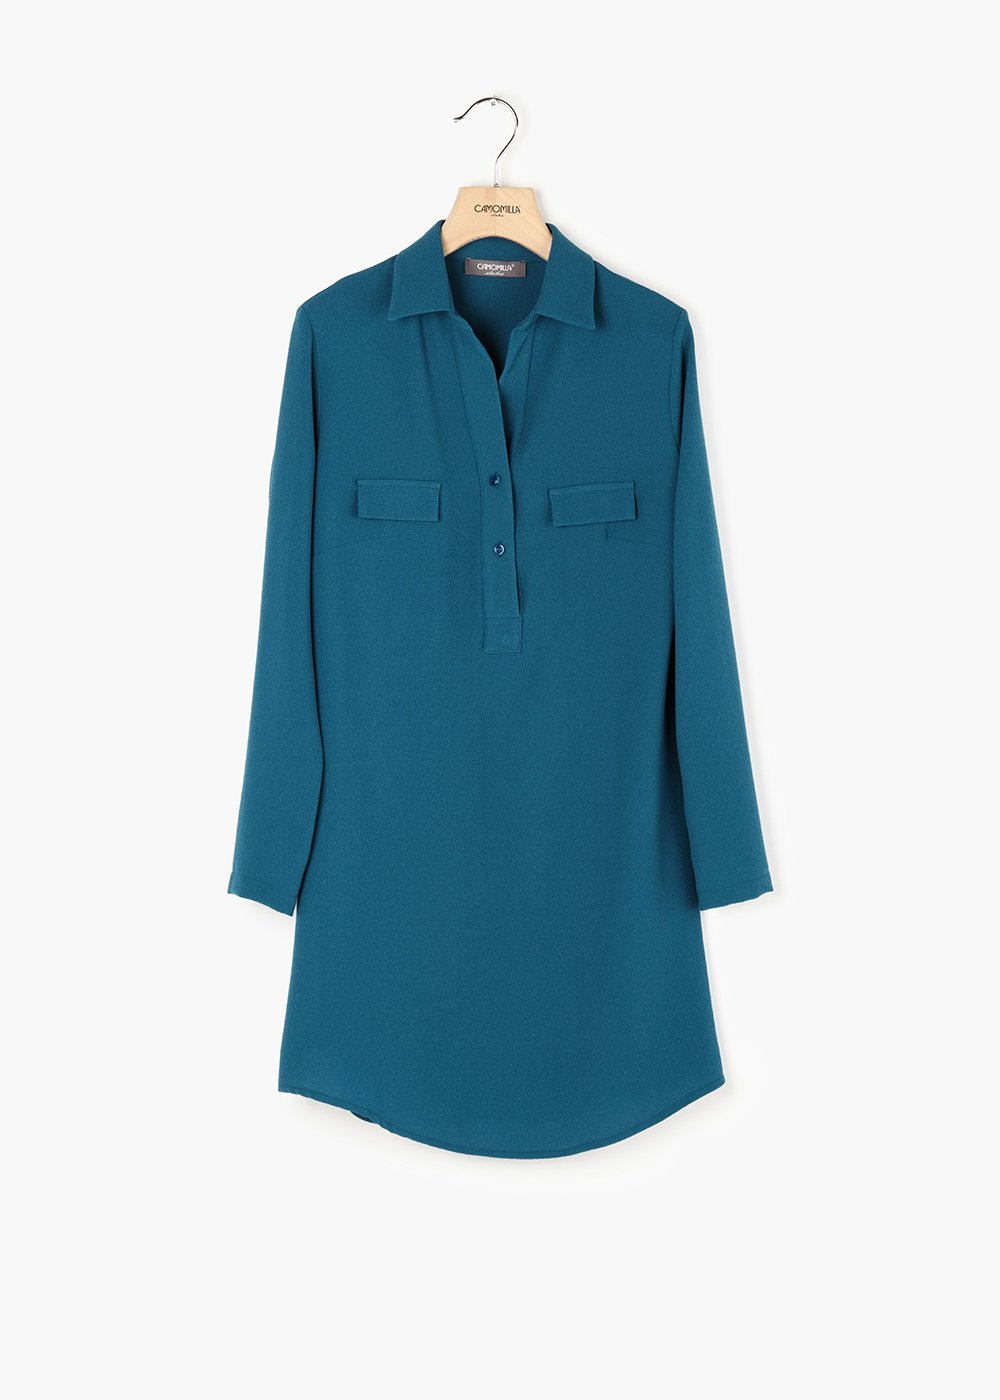 Paola crêpe t-shirt with flaps on the front - Blue - Woman